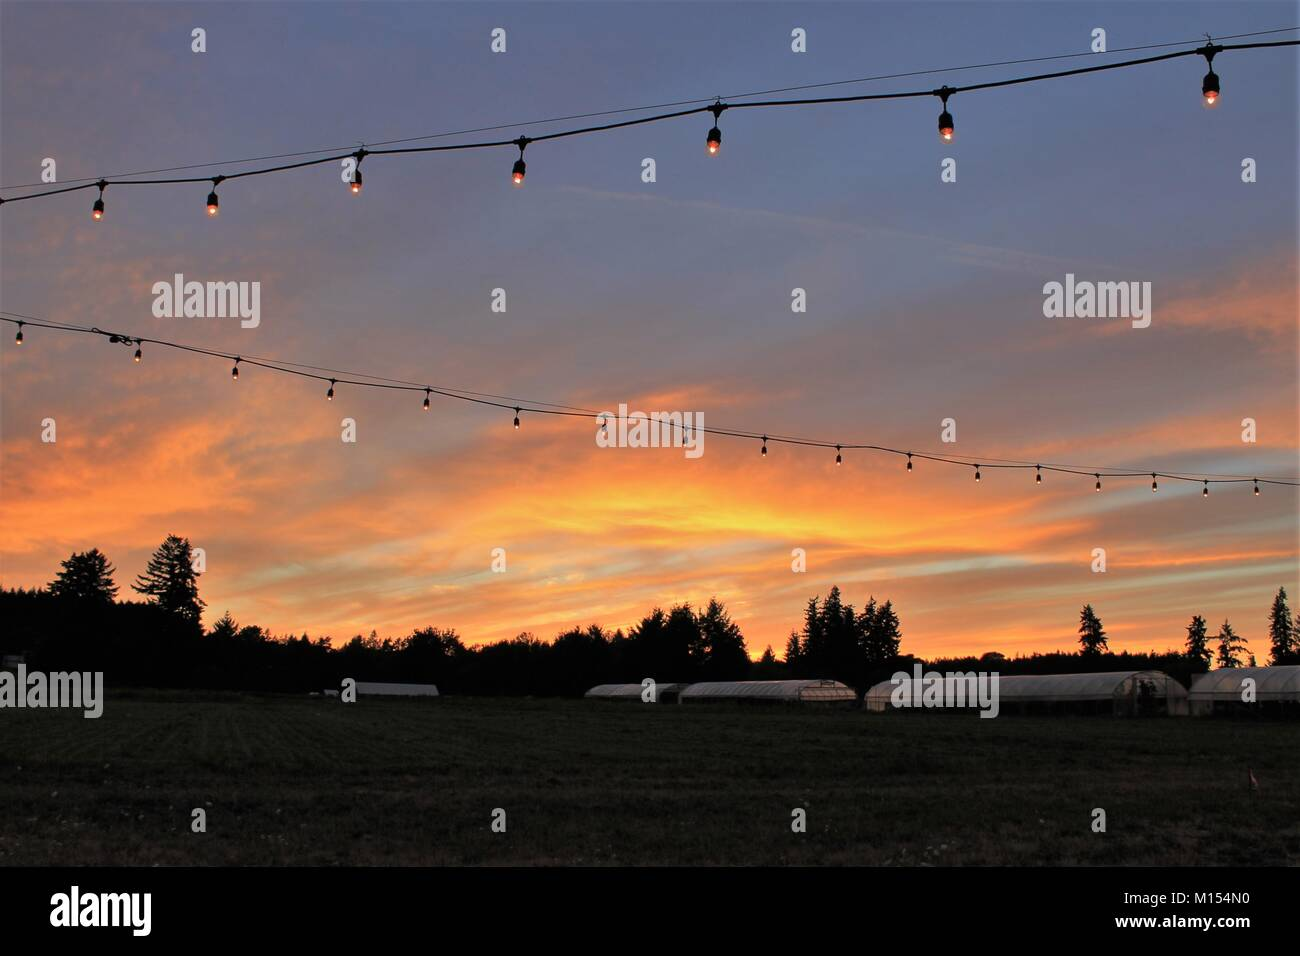 string of lights against a sunset backdrop of farm with greenhouses in background - Stock Image